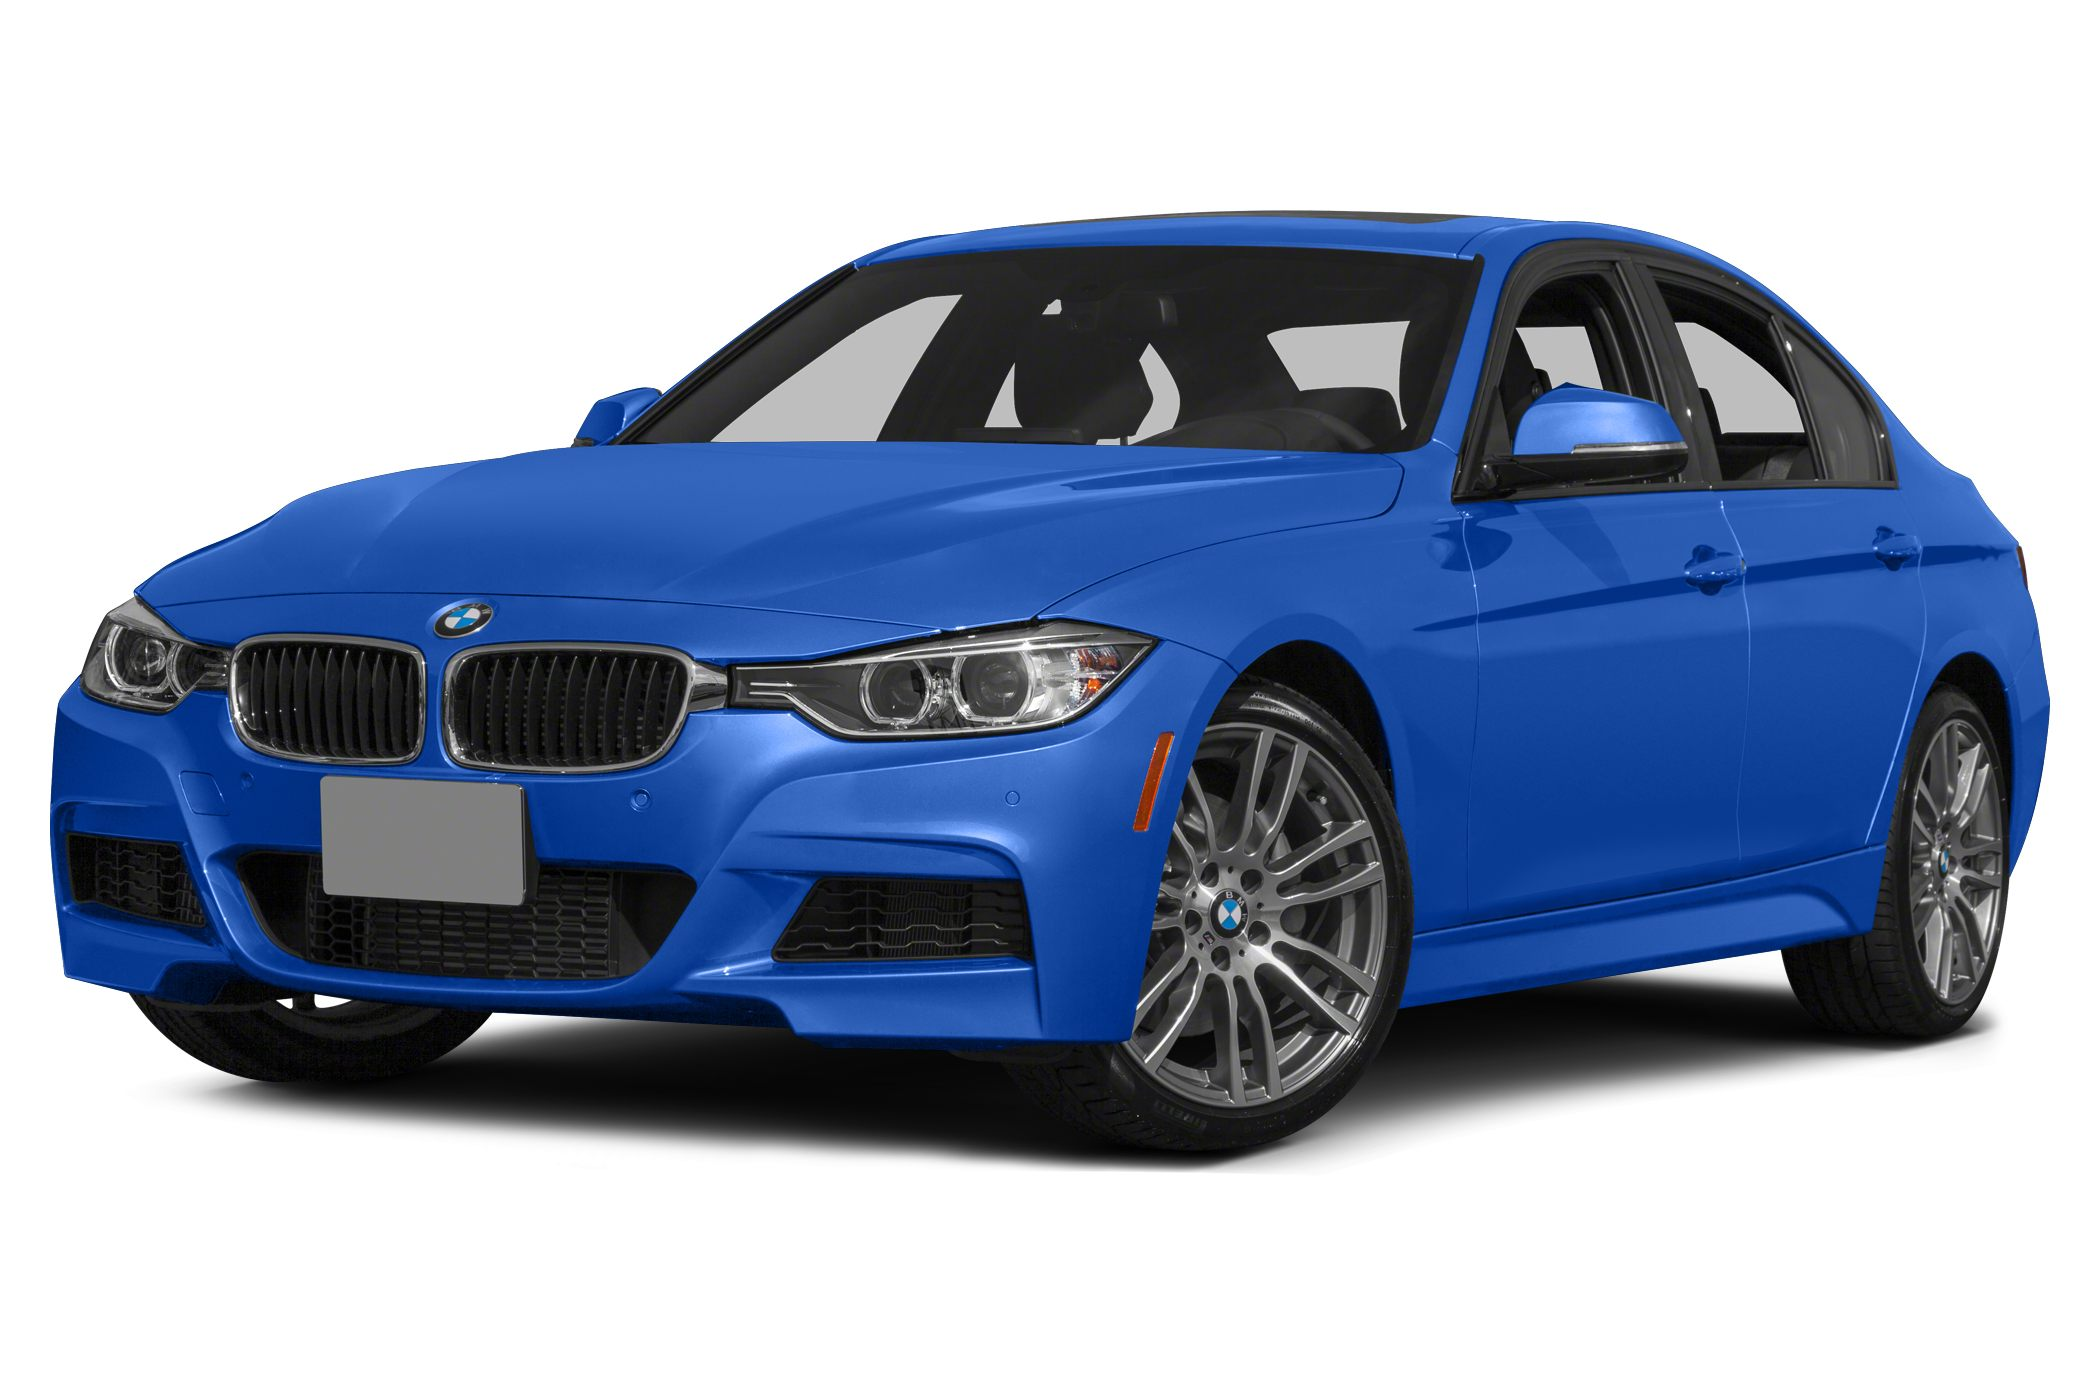 2013 BMW 3 Series 335i xDrive Visit Best Auto Group online at bronxbestautocom to see more pictur